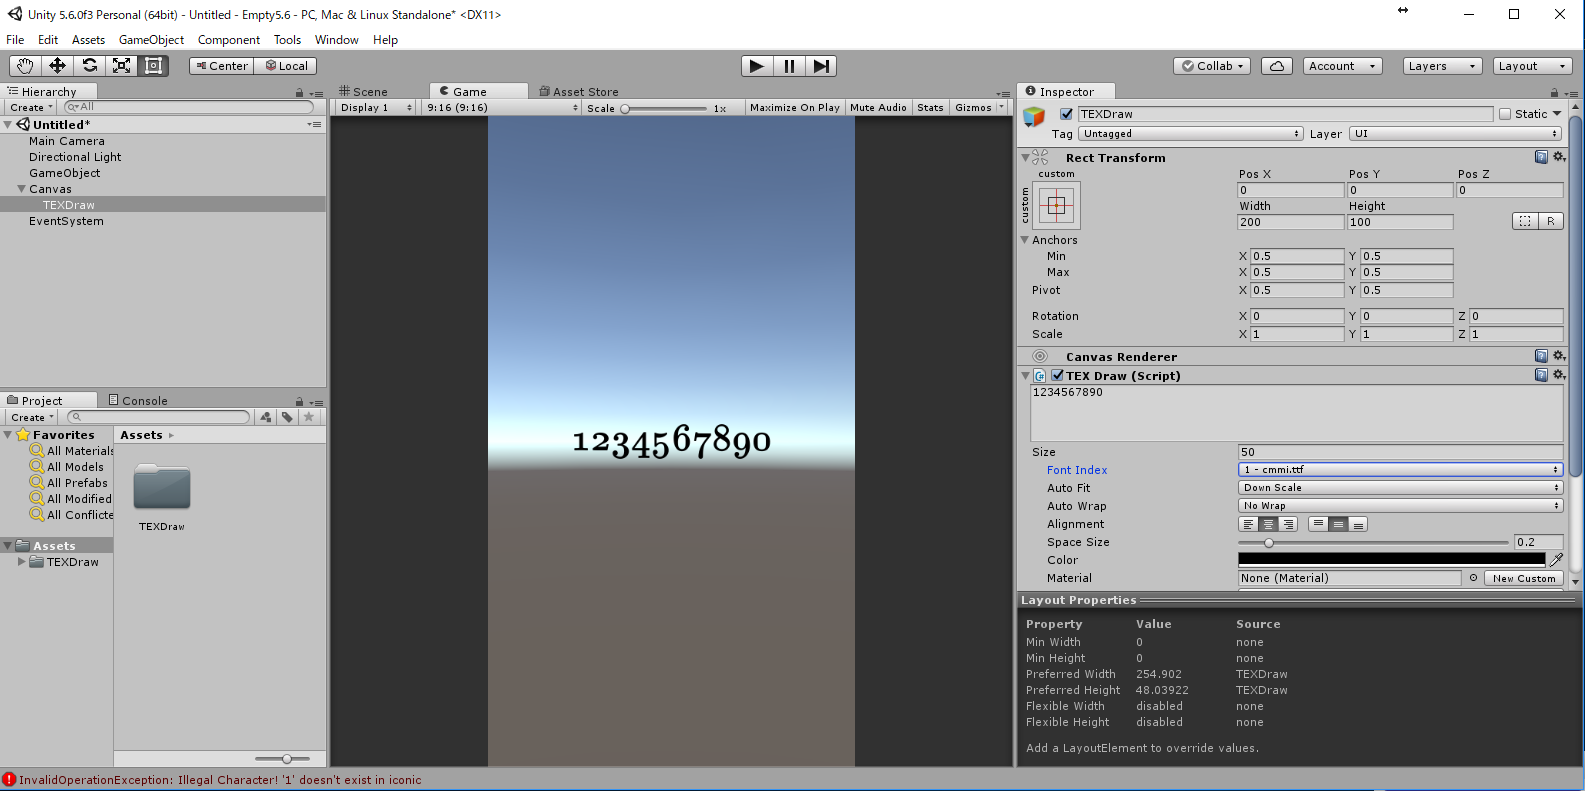 TEXDraw - Create Math Expressions inside Unity! | Page 4 - Unity Forum